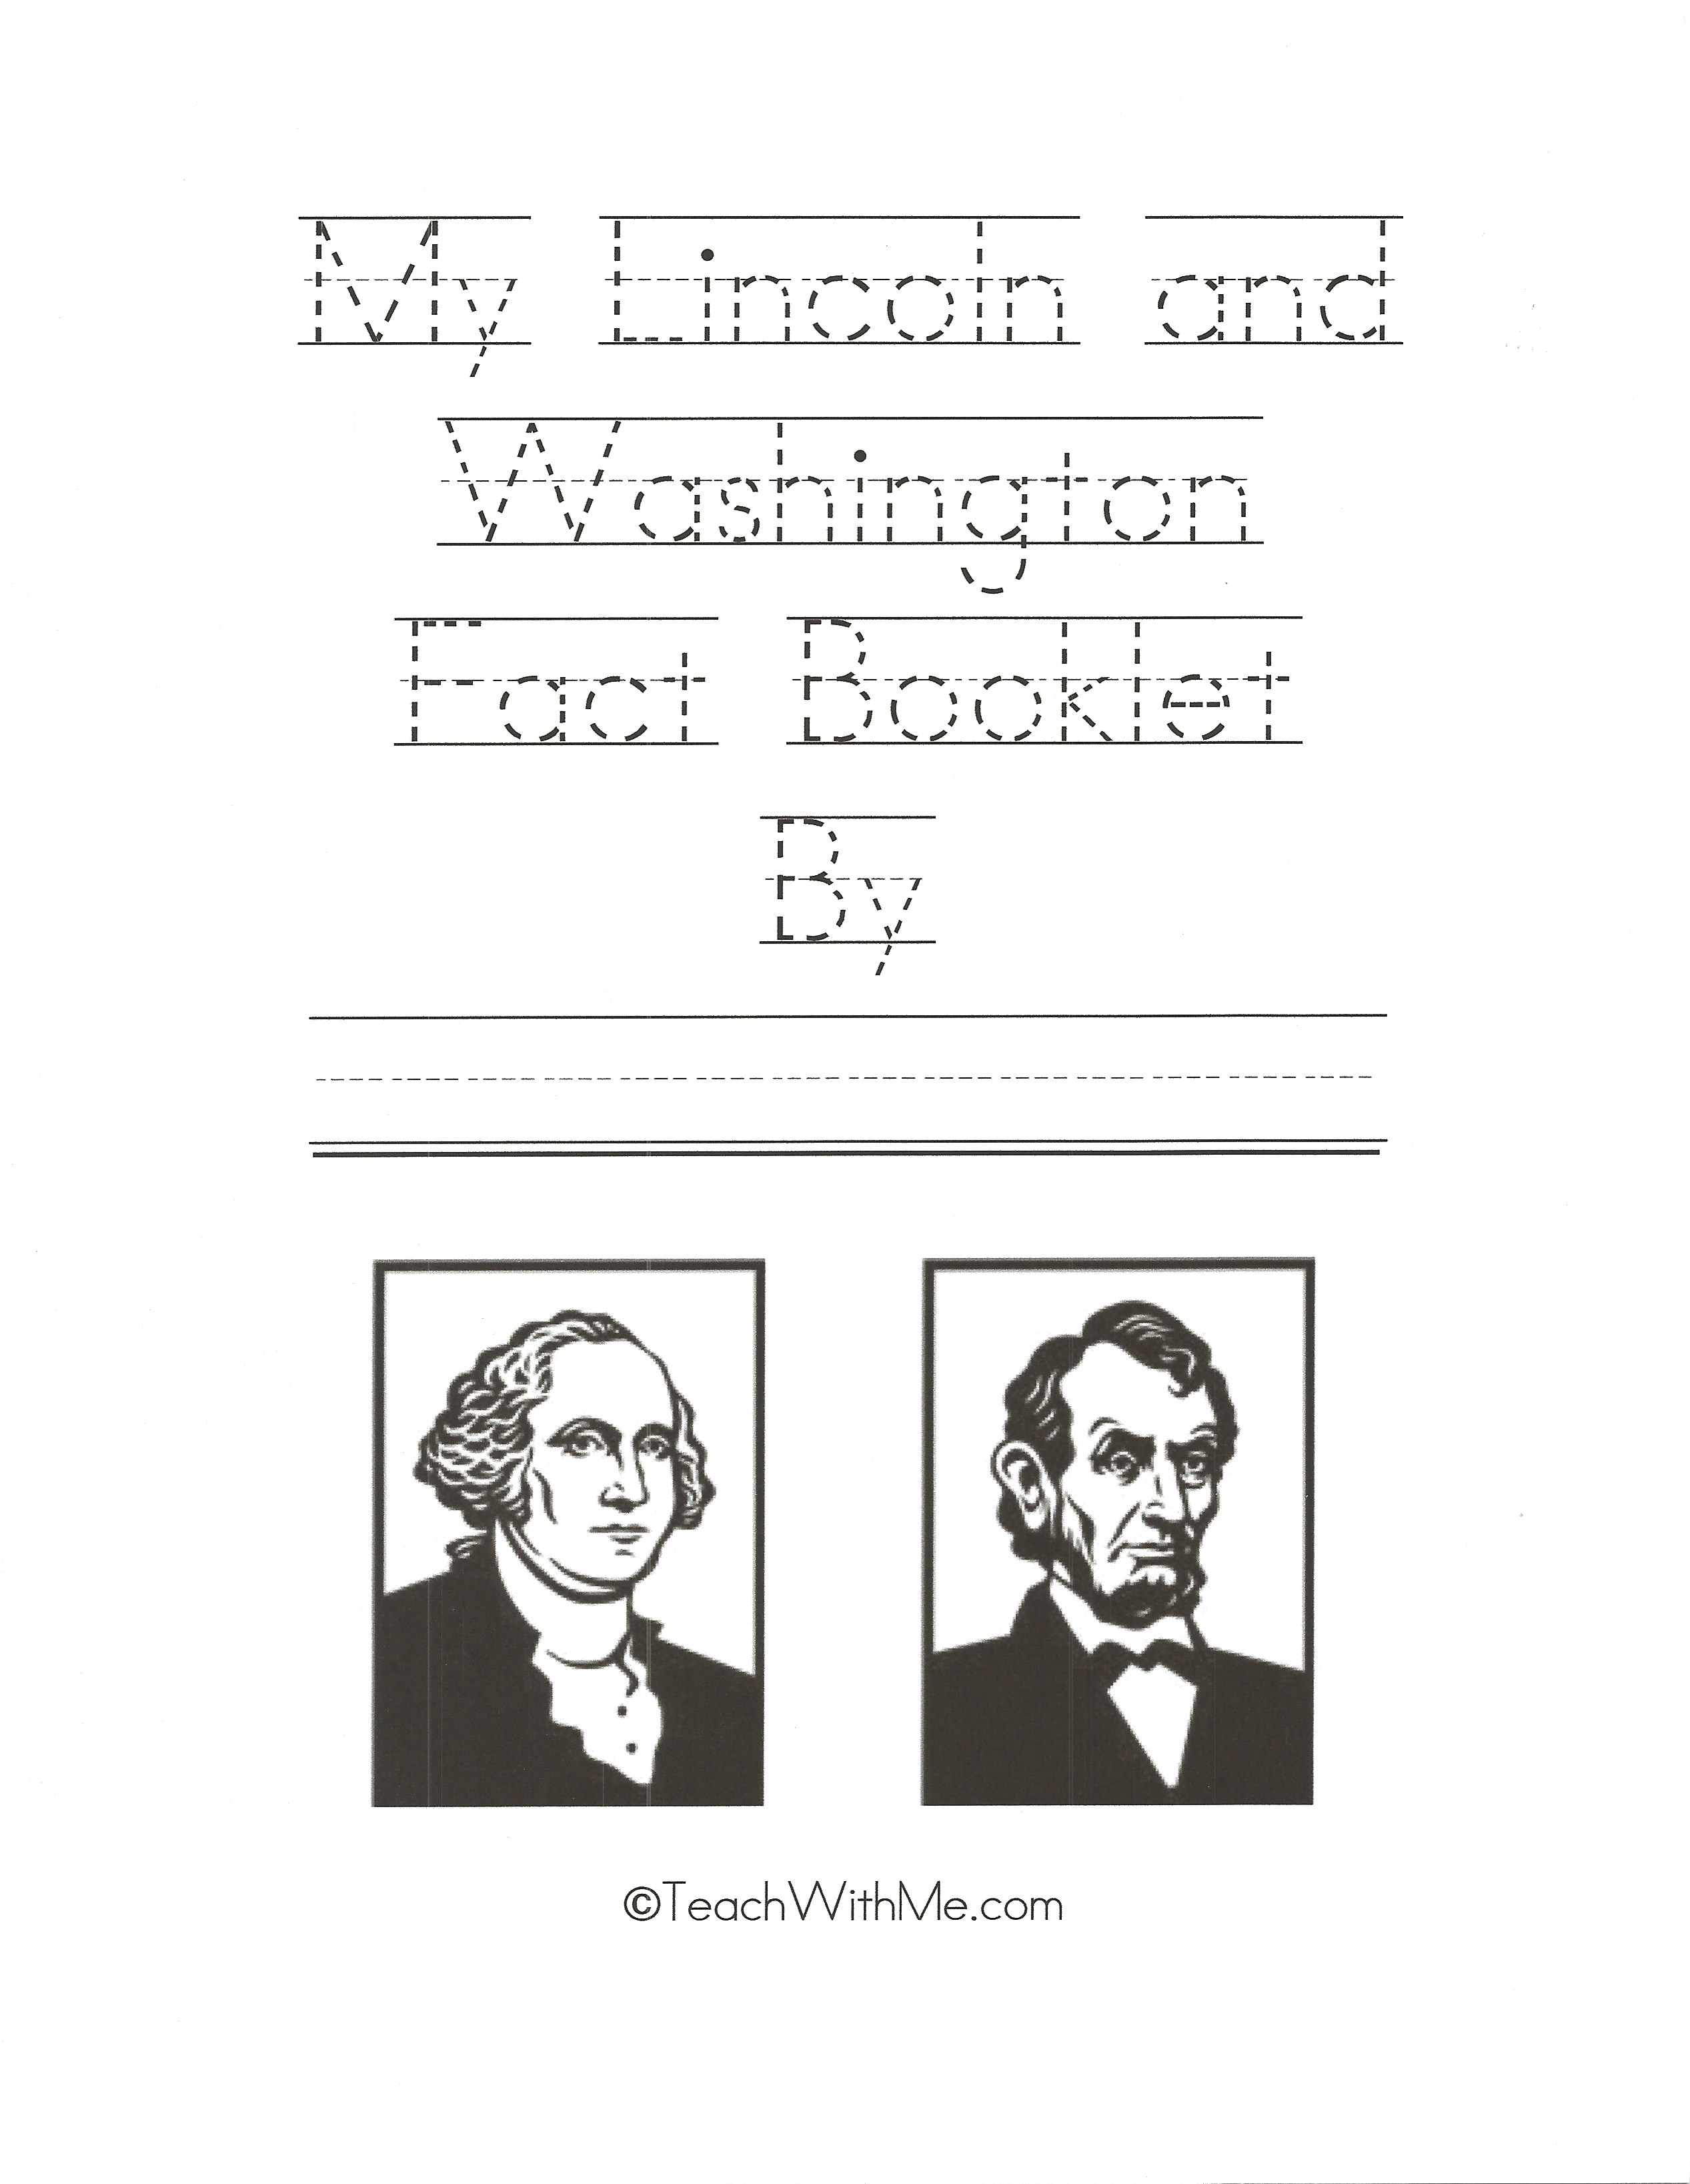 washington activities, lincoln activities, presidents day activities, presidents day centers, presidents day writing prompts, writing prompts for february, writing prompts for kindergarten, writing prompts for first grade, making class books, class books,writing class books,